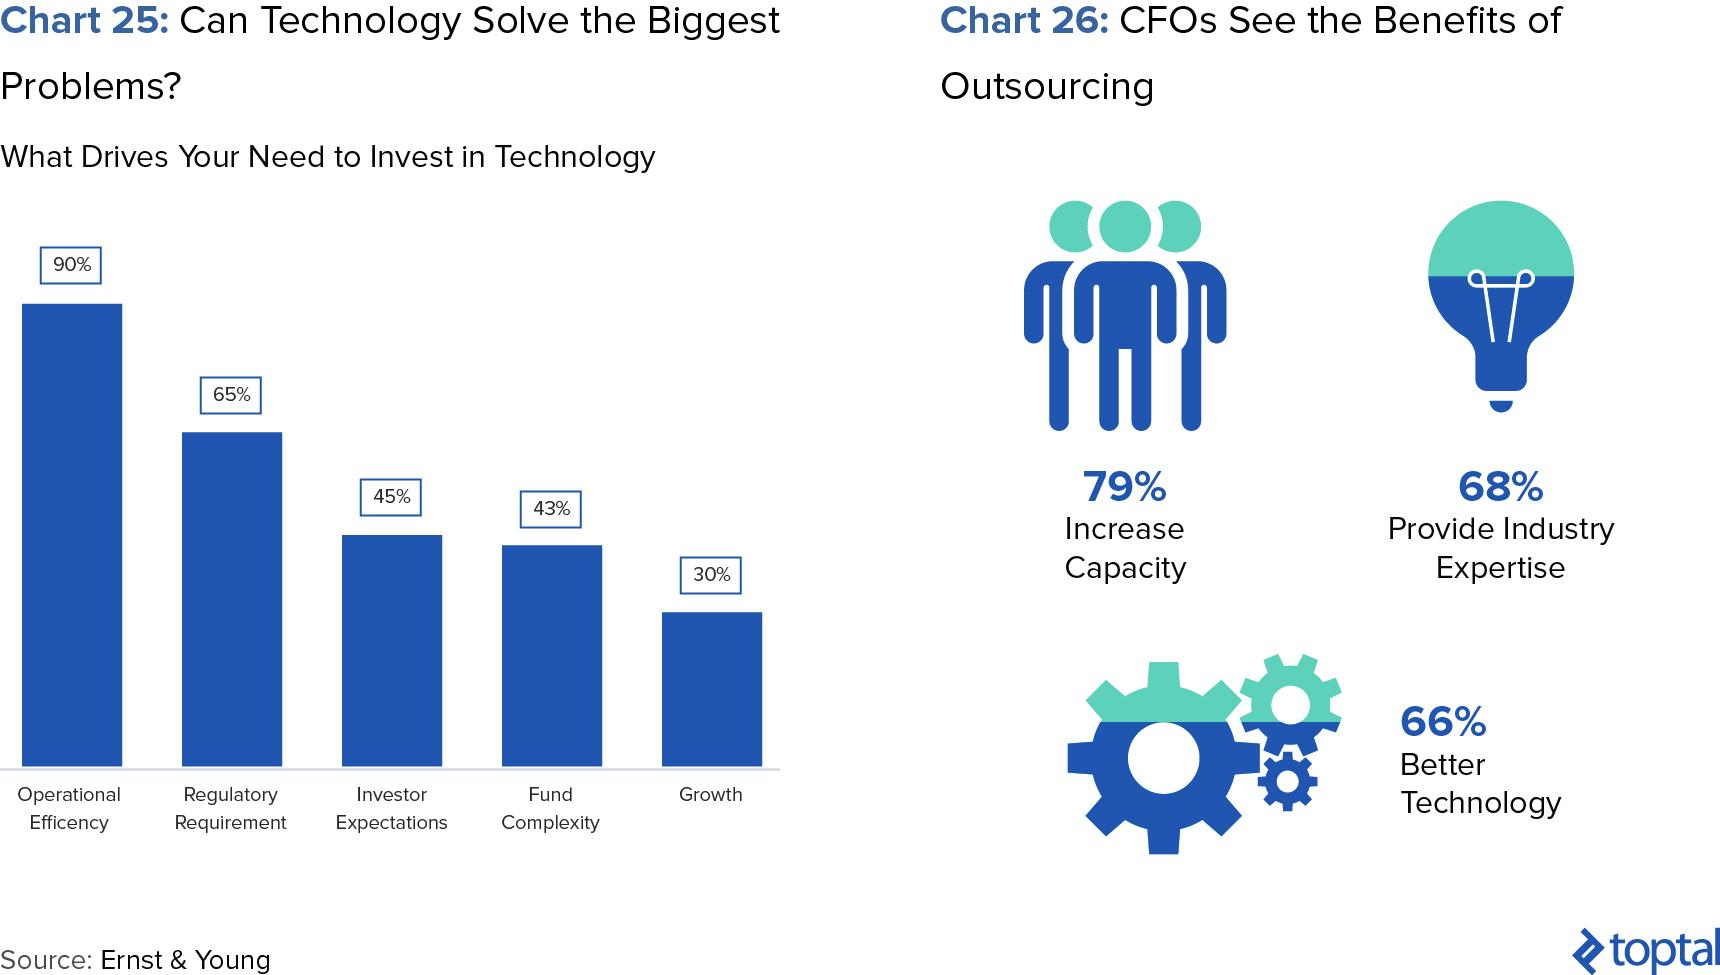 Chart 25: Can Technology Solve the Biggest Problems?; and Chart 26: CFOs See the Benefits of Outsourcing